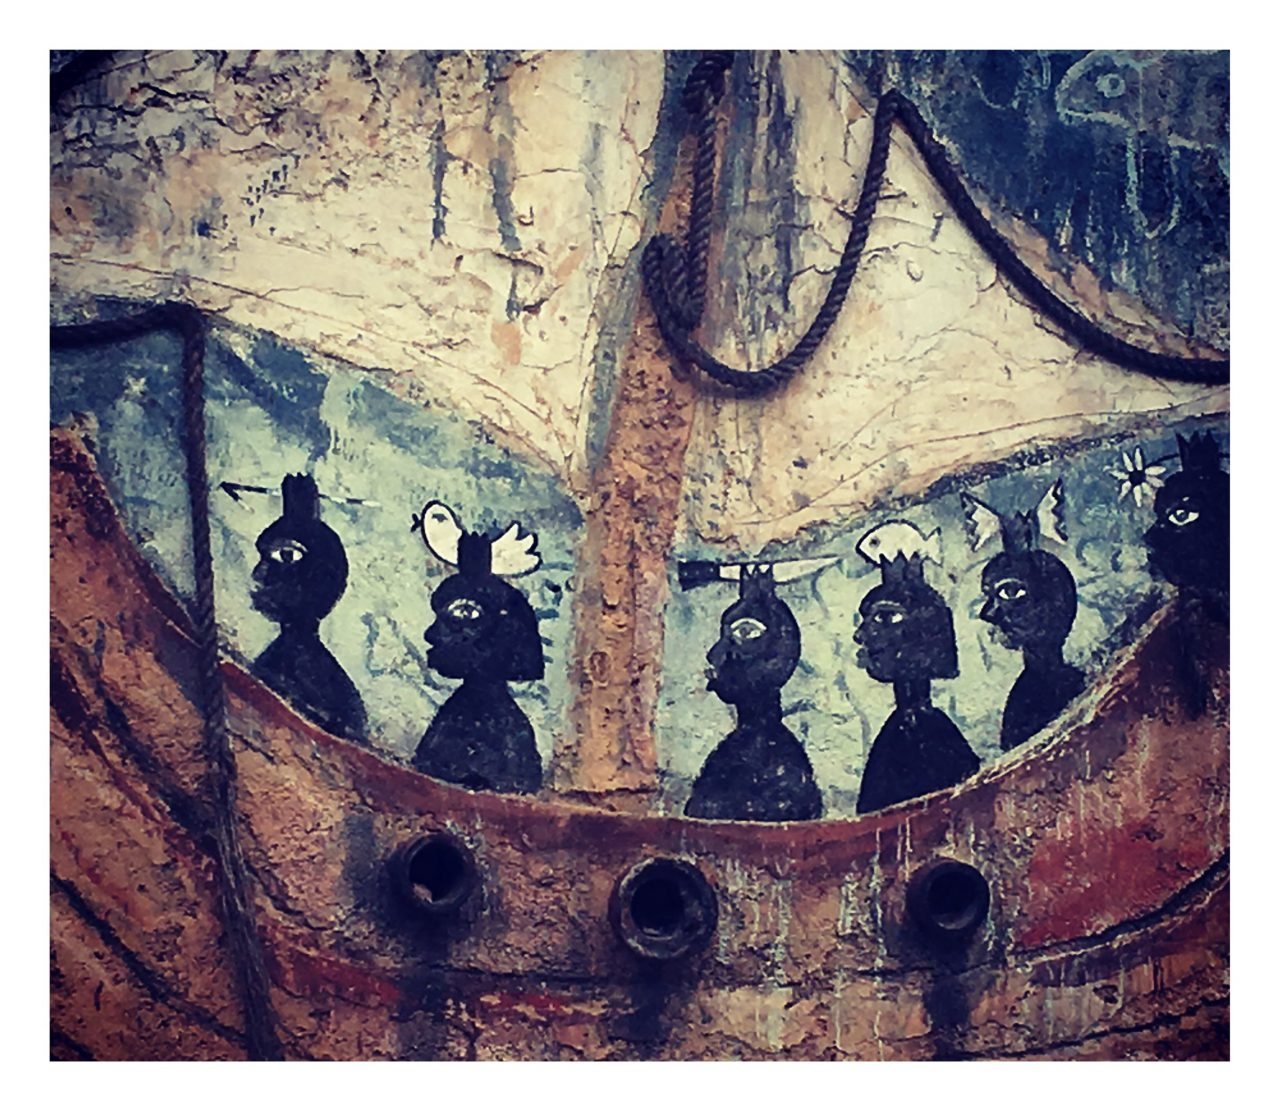 Street art from Matanzas, Cuba depicting African slaves on ship with animals in their hair.